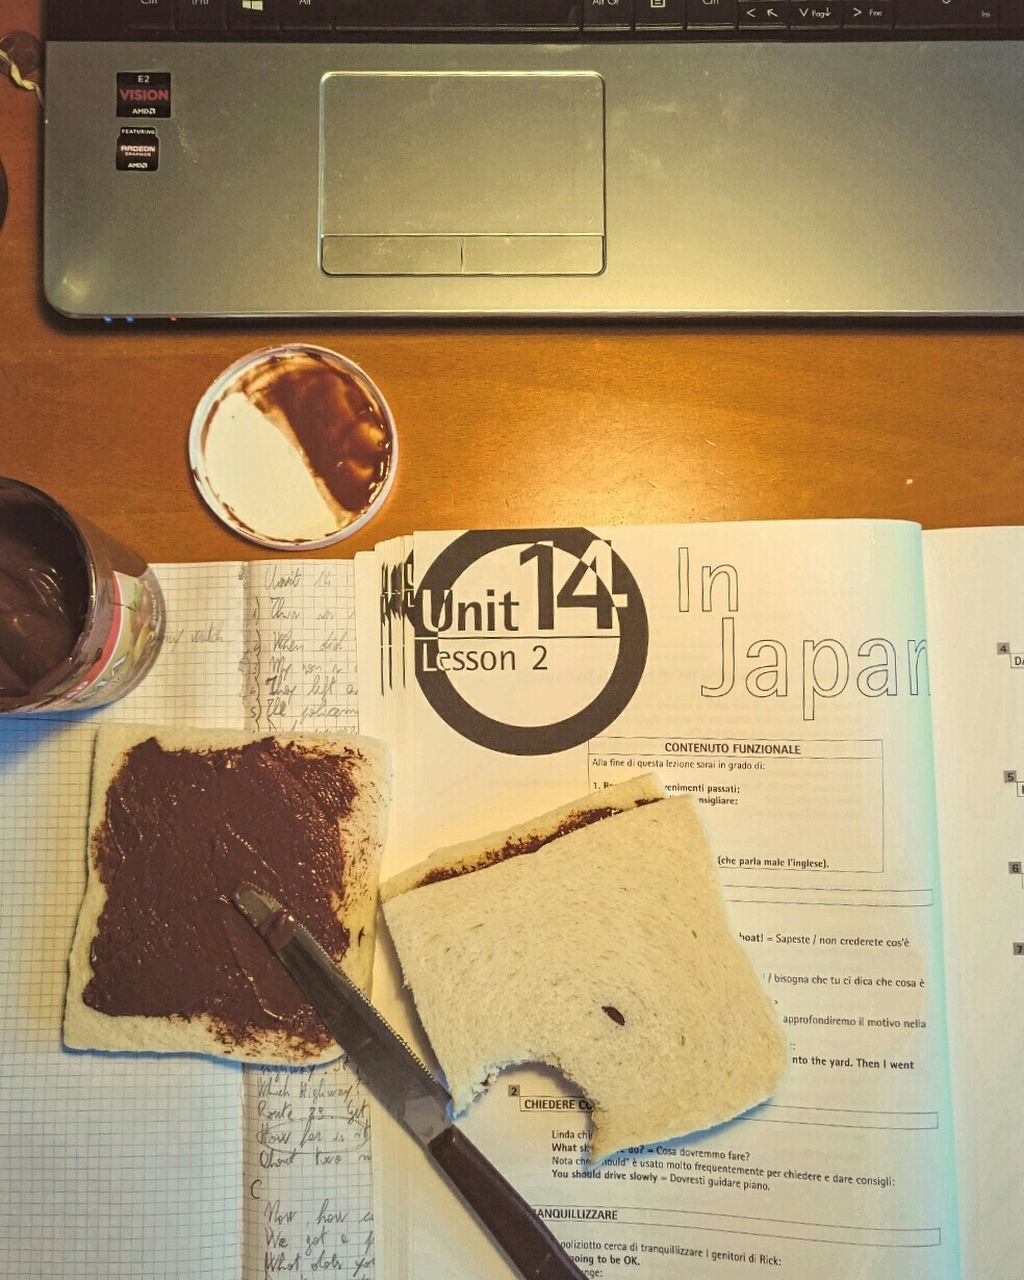 indoors, text, paper, food and drink, table, breakfast, food, no people, close-up, newspaper, time, day